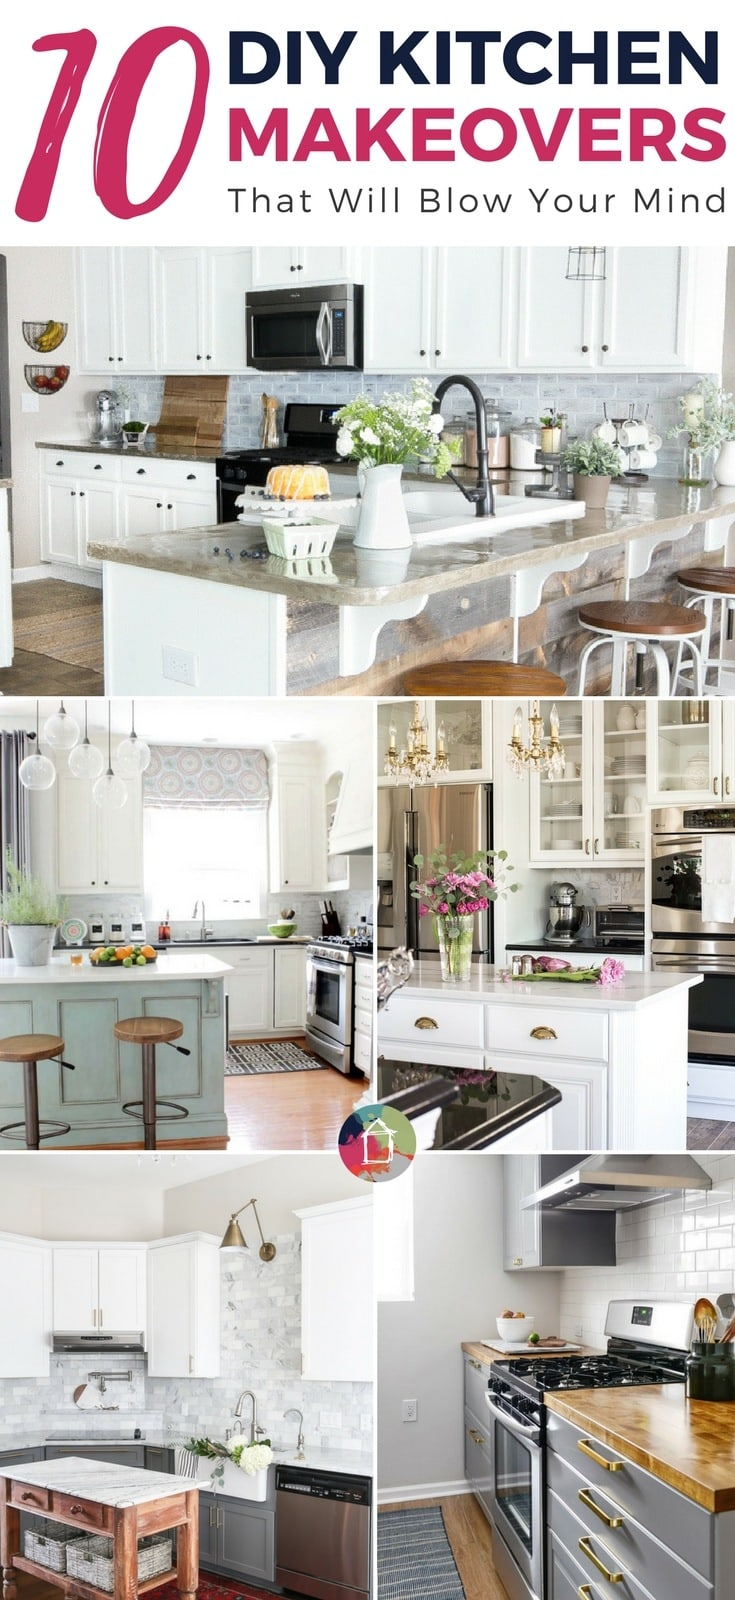 Looking For Diy Kitchen Makeover Ideas These 10 Amazing Renovations Will Your Mind And Have You Planning New